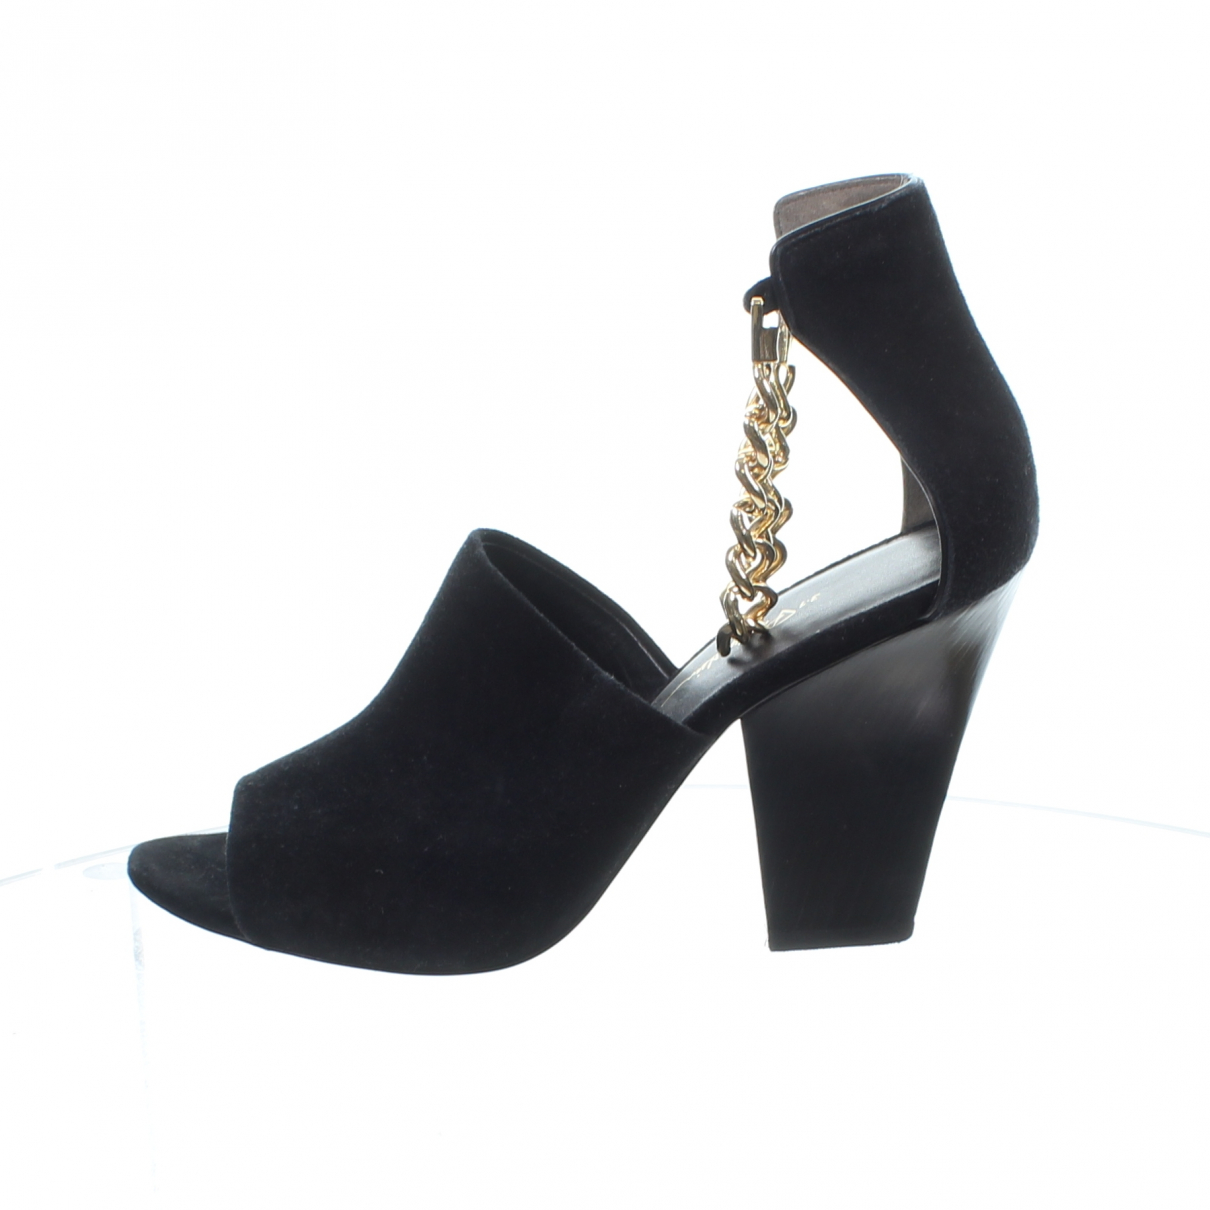 3.1 Phillip Lim \N Black Suede Heels for Women 38 EU